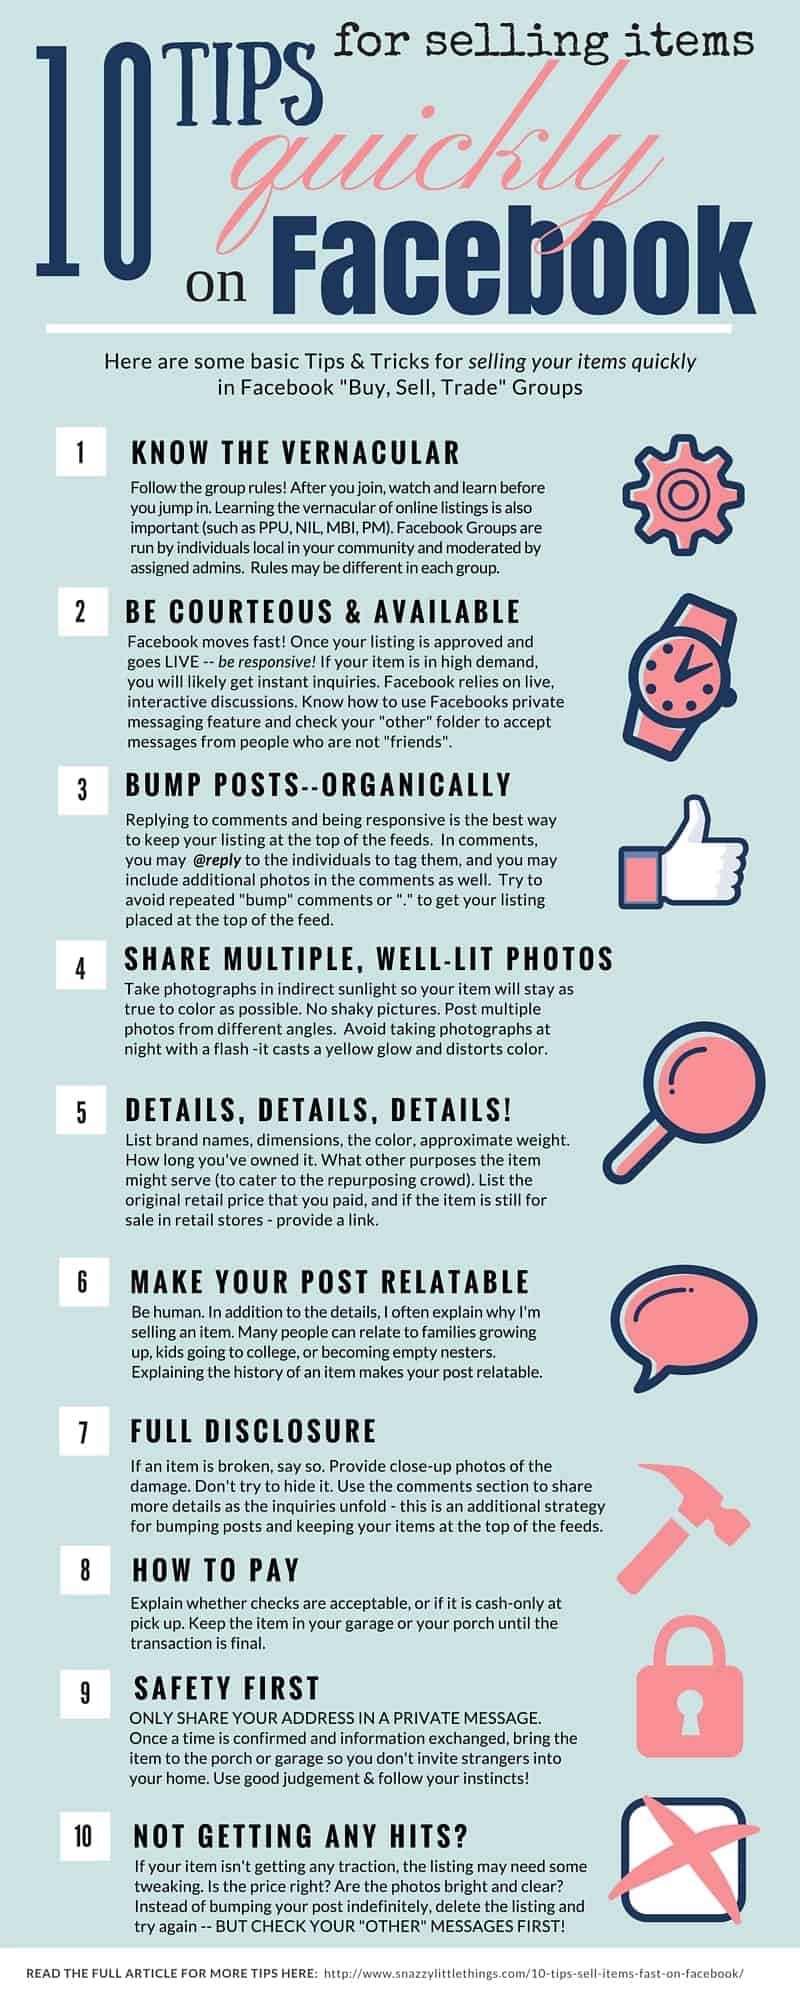 10 Tips for Selling Items Fast on Facebook